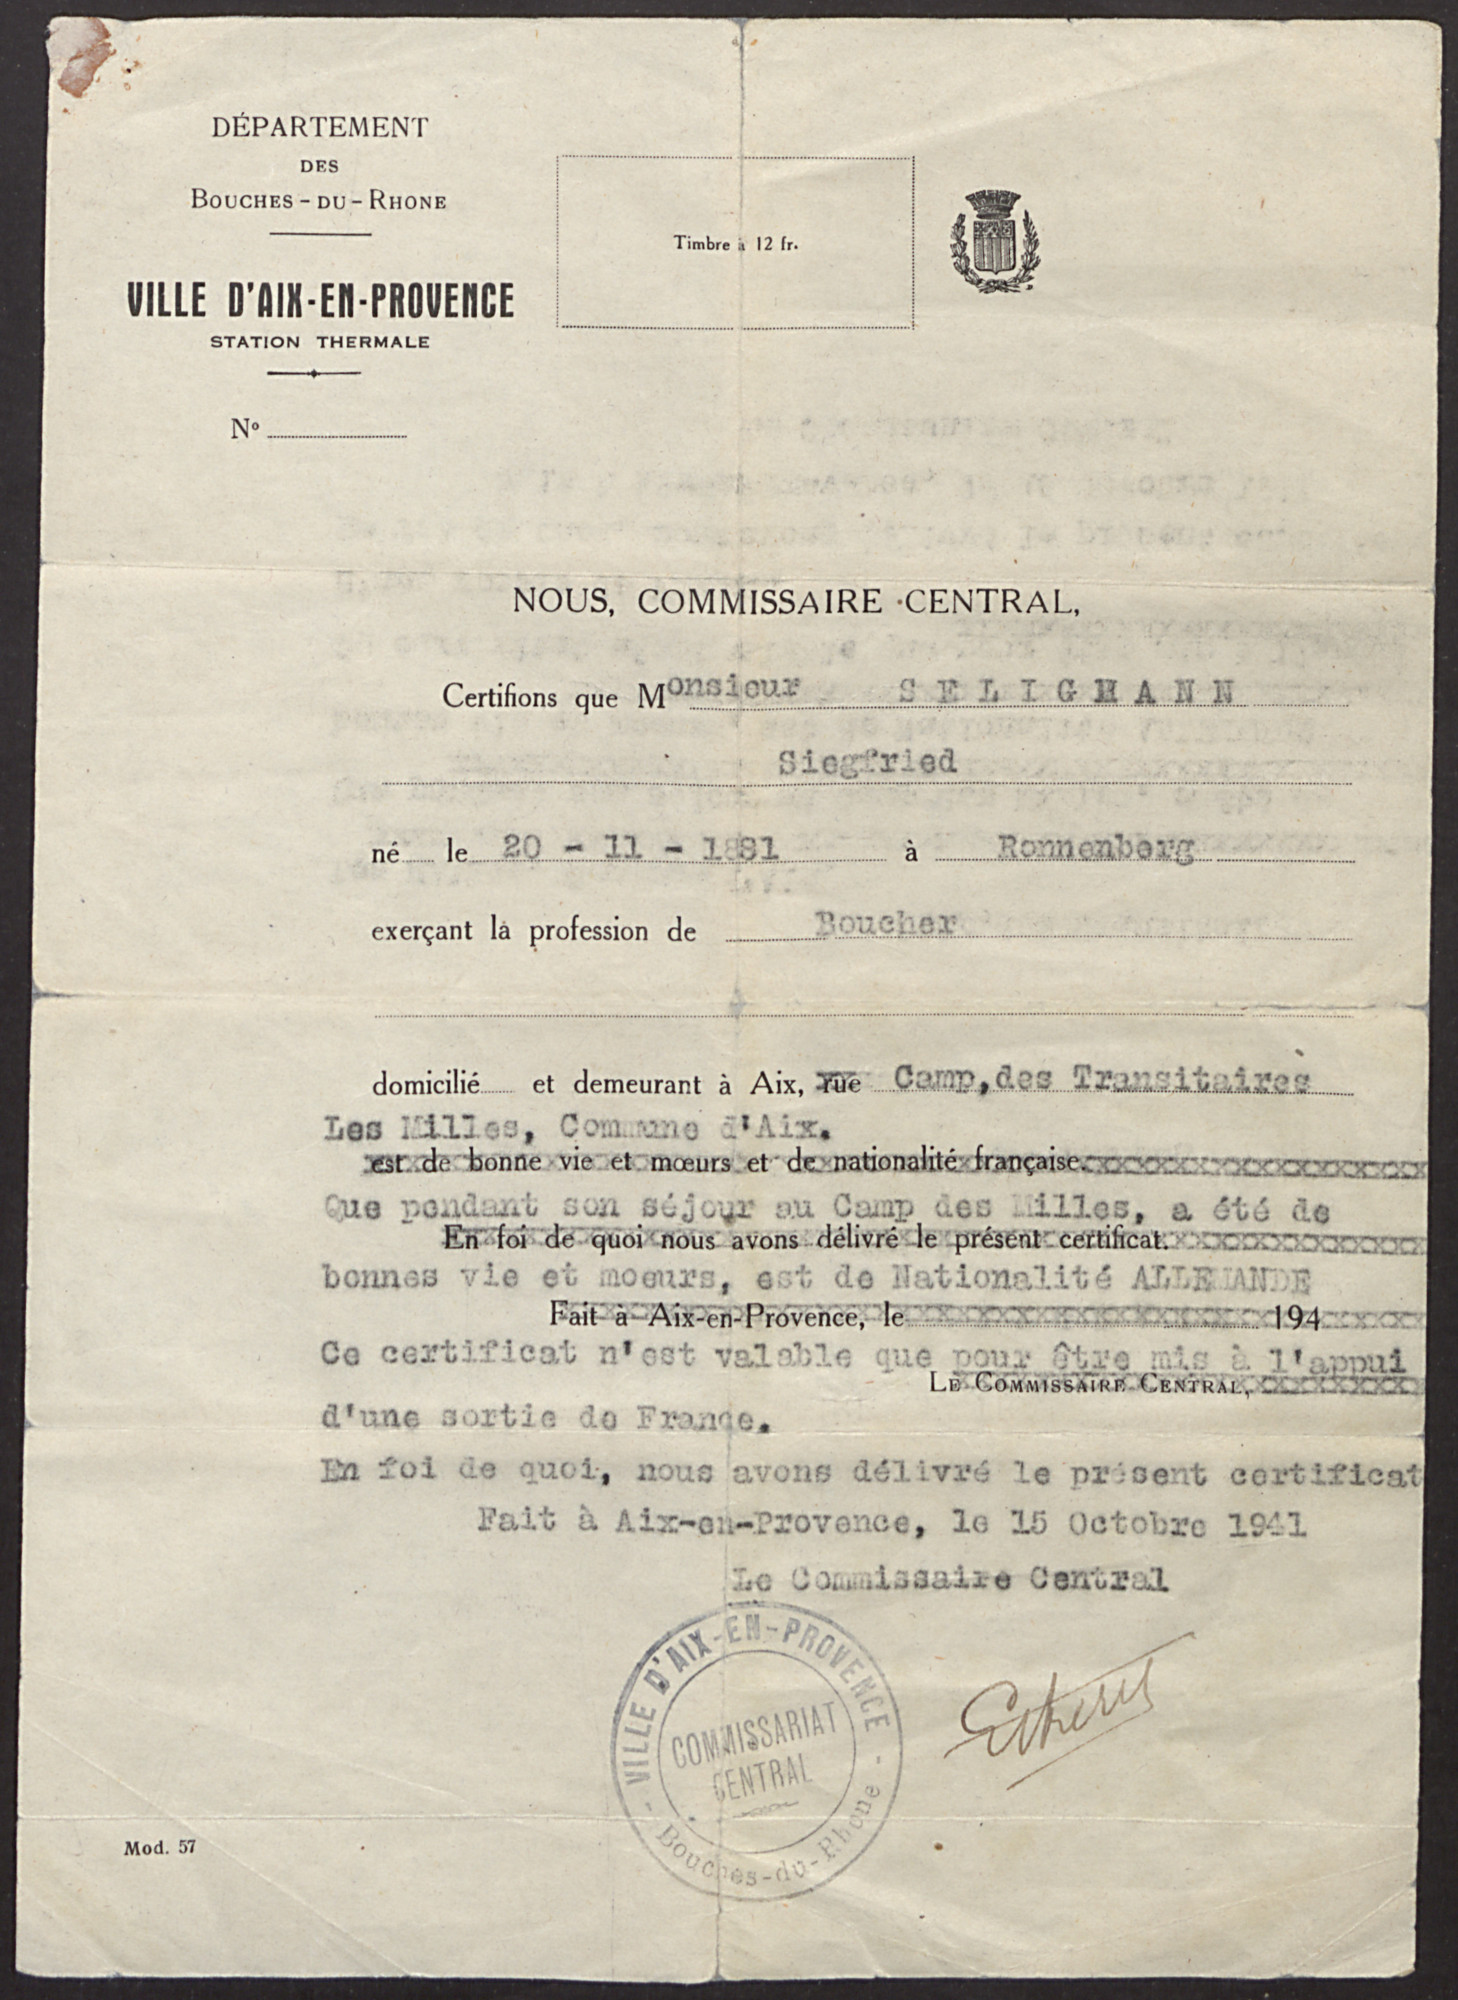 Exit visa for Siegfried Seligmann issued by the Central Commissariat, Ville d'Aix en Provence, Department of Bouches du Rhone and dated October 15, 1941.     The document, which identifies Seligmann as a butcher who was born in Ronnenberg on November 11, 1881, notes that he has been  an internee of good standing during his stay at the Les Milles transit camp.